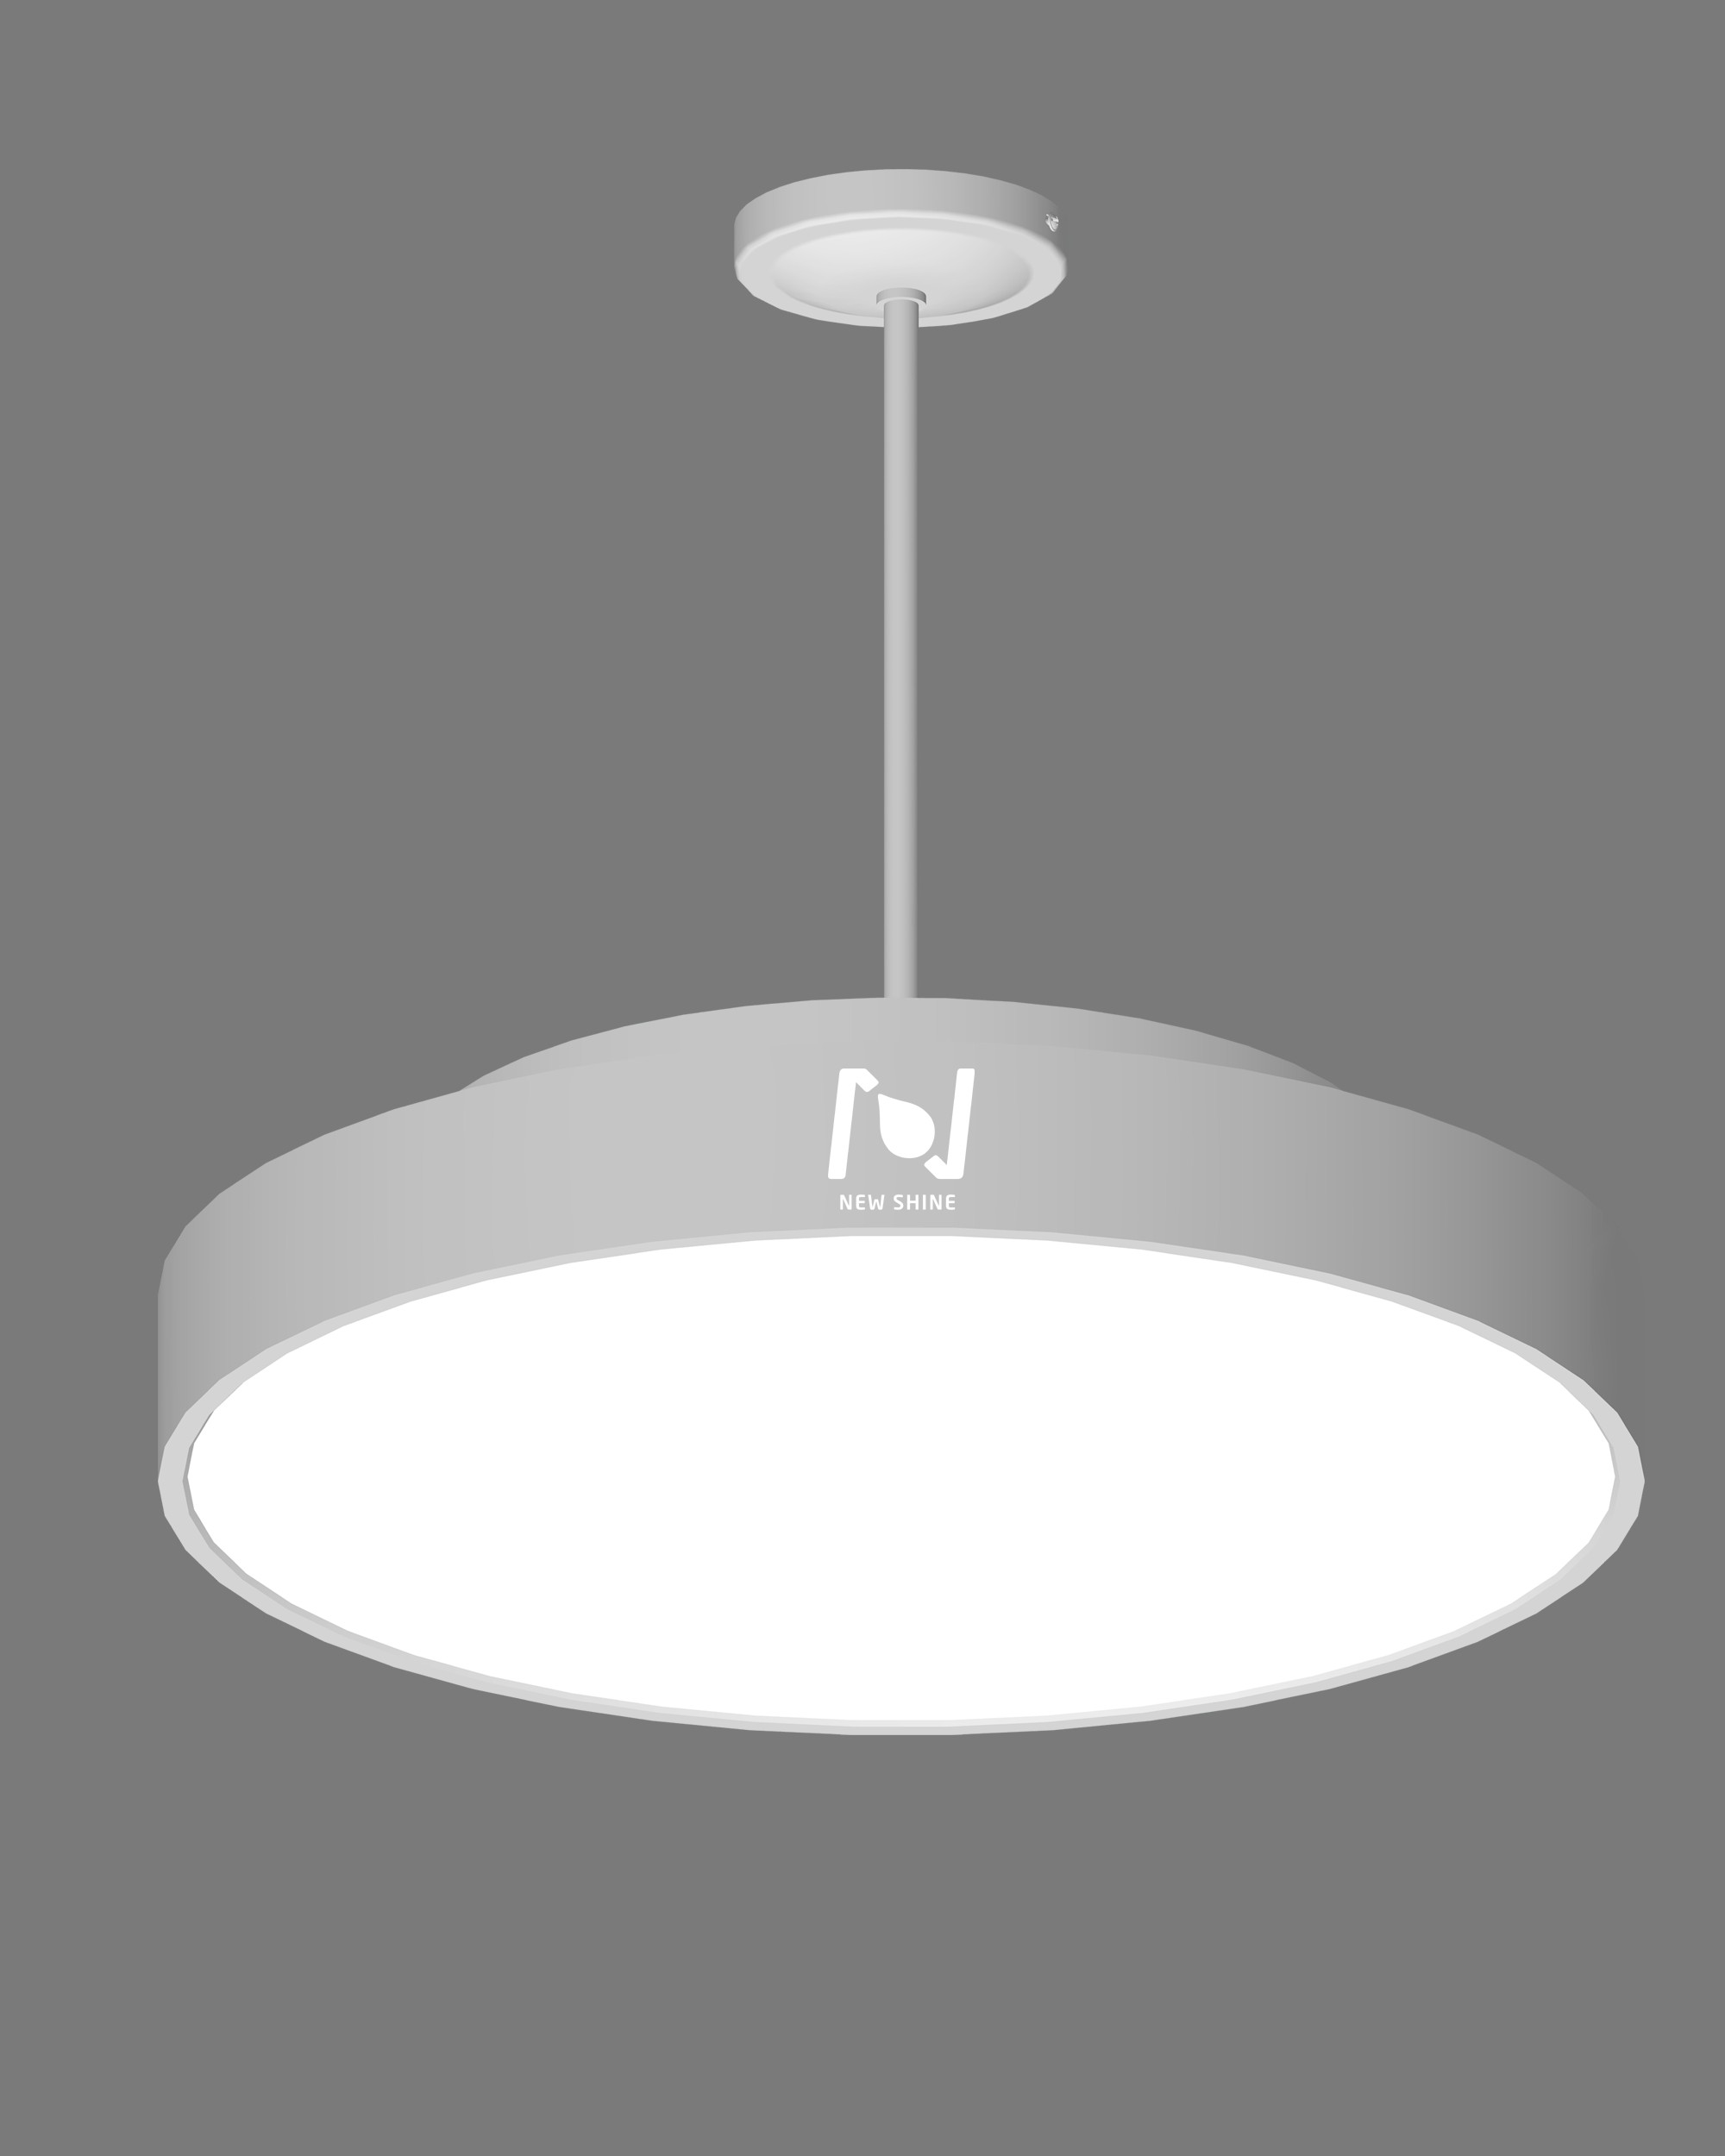 Circle suspended architectural LED light fixture circular lighting LL0112S-40W